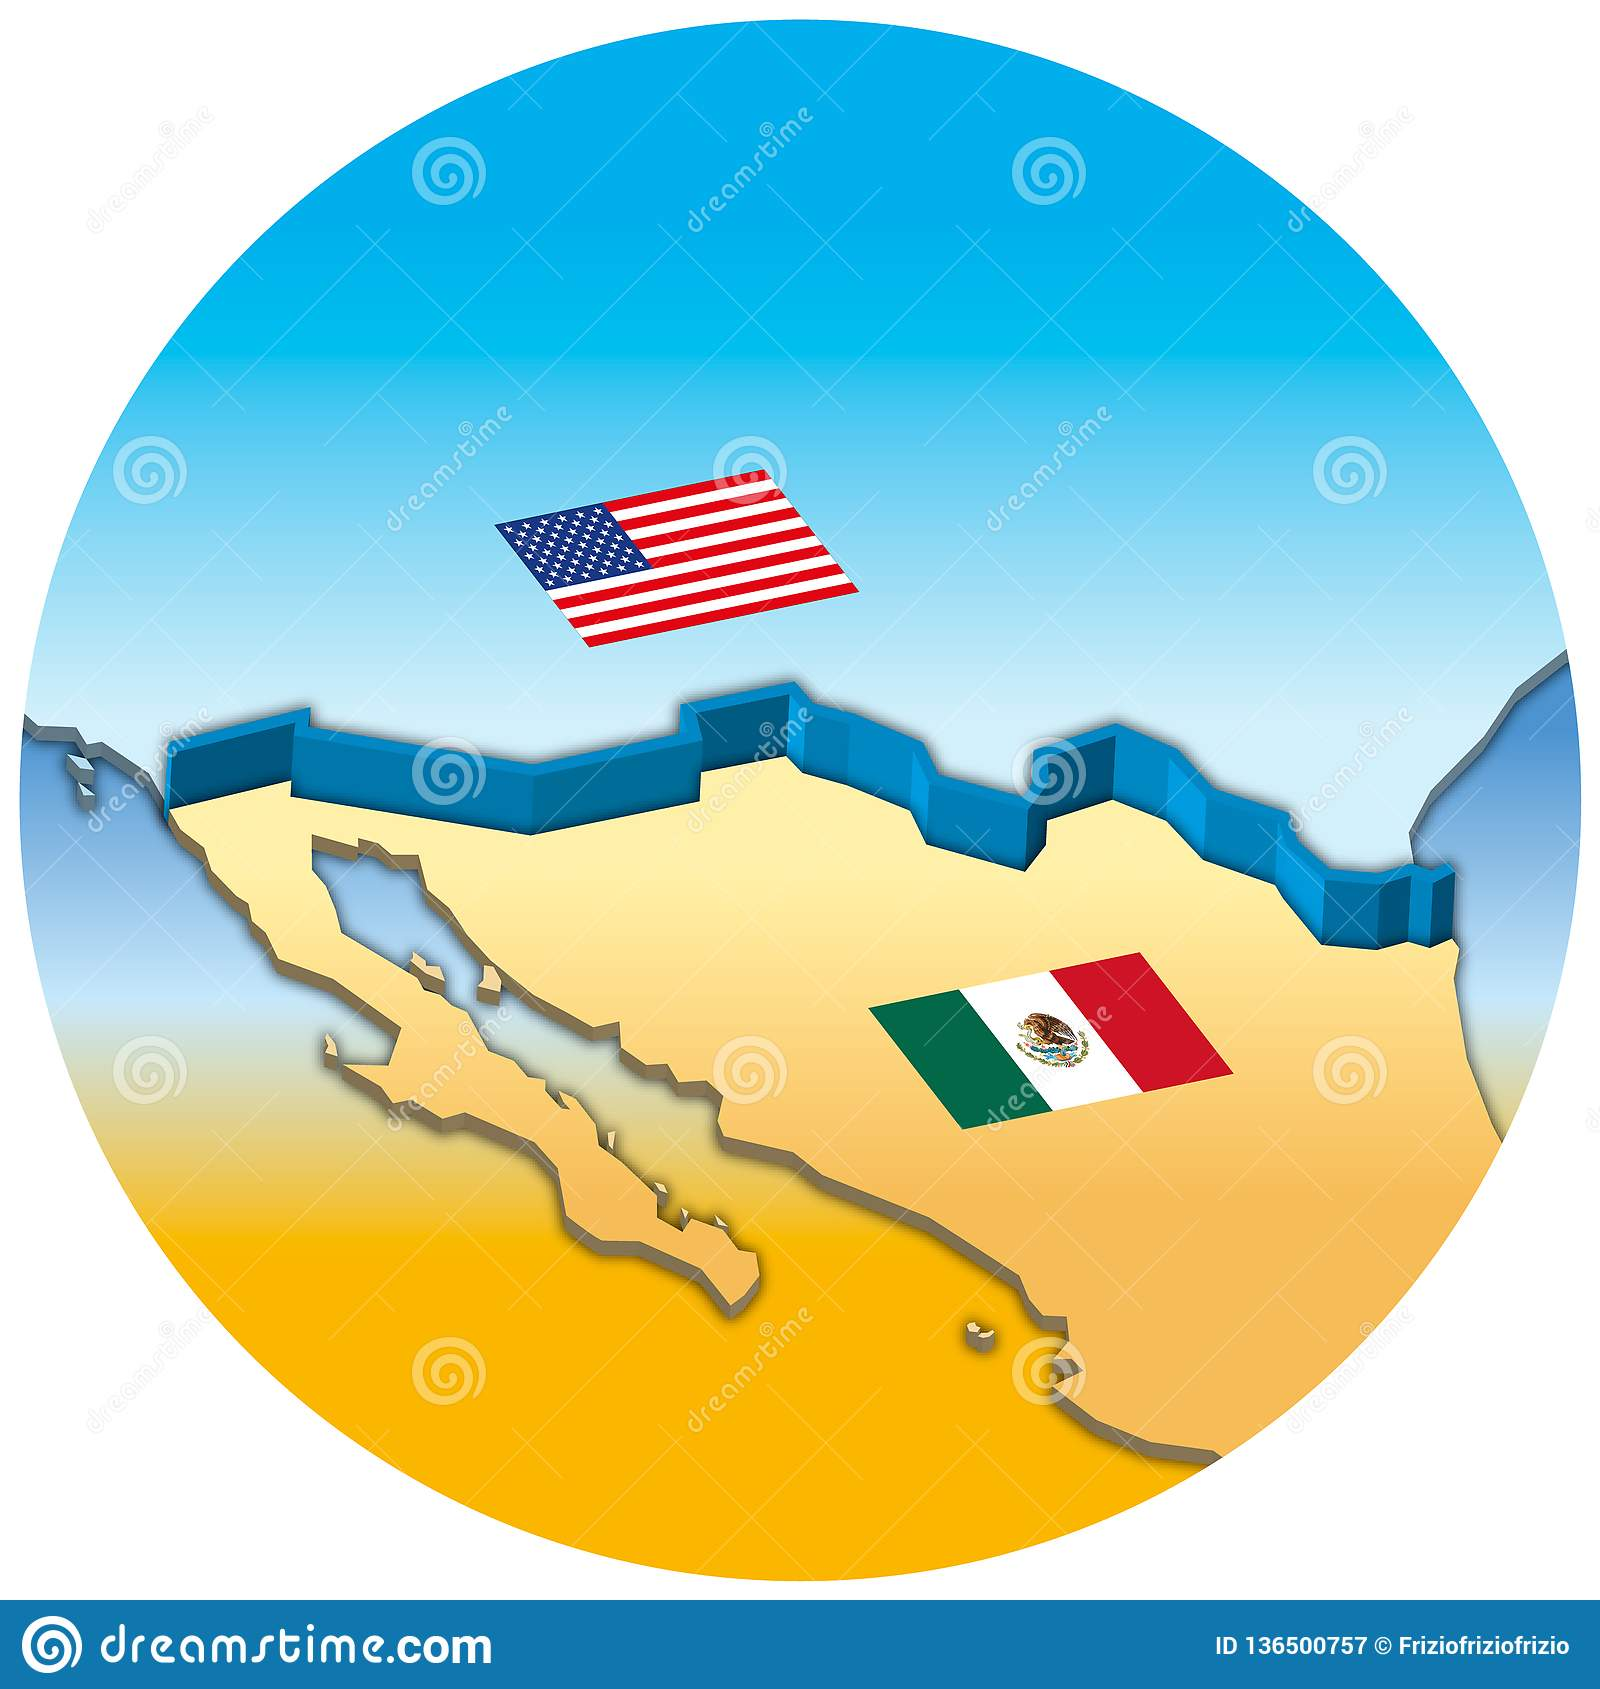 Usa And Mexico Border Wall Map With National Flags Stock ...